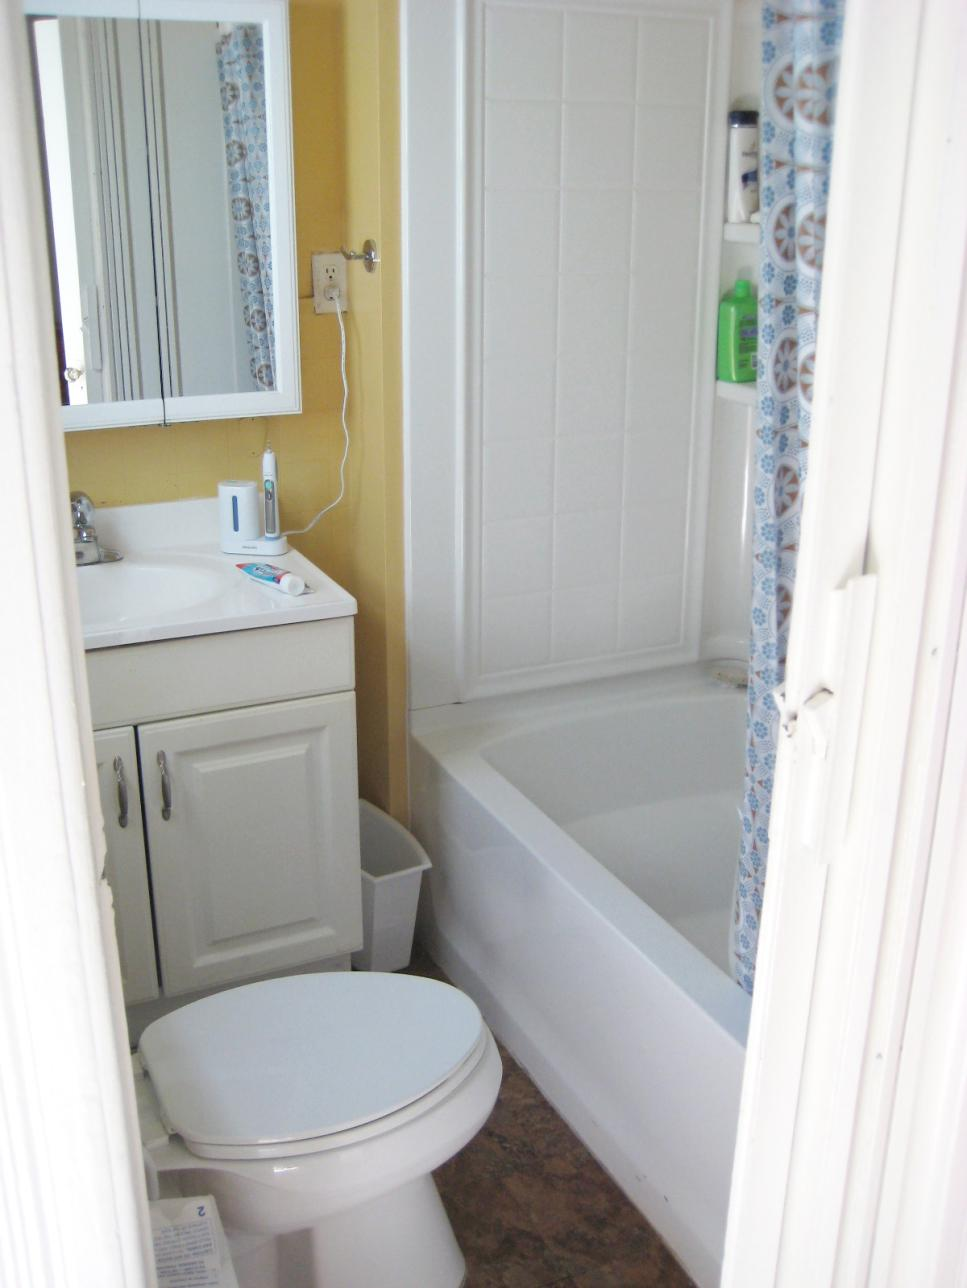 Small Space Modern Bathroom Jennifer Jones Hgtv Designing A Bathroom In A Small Space